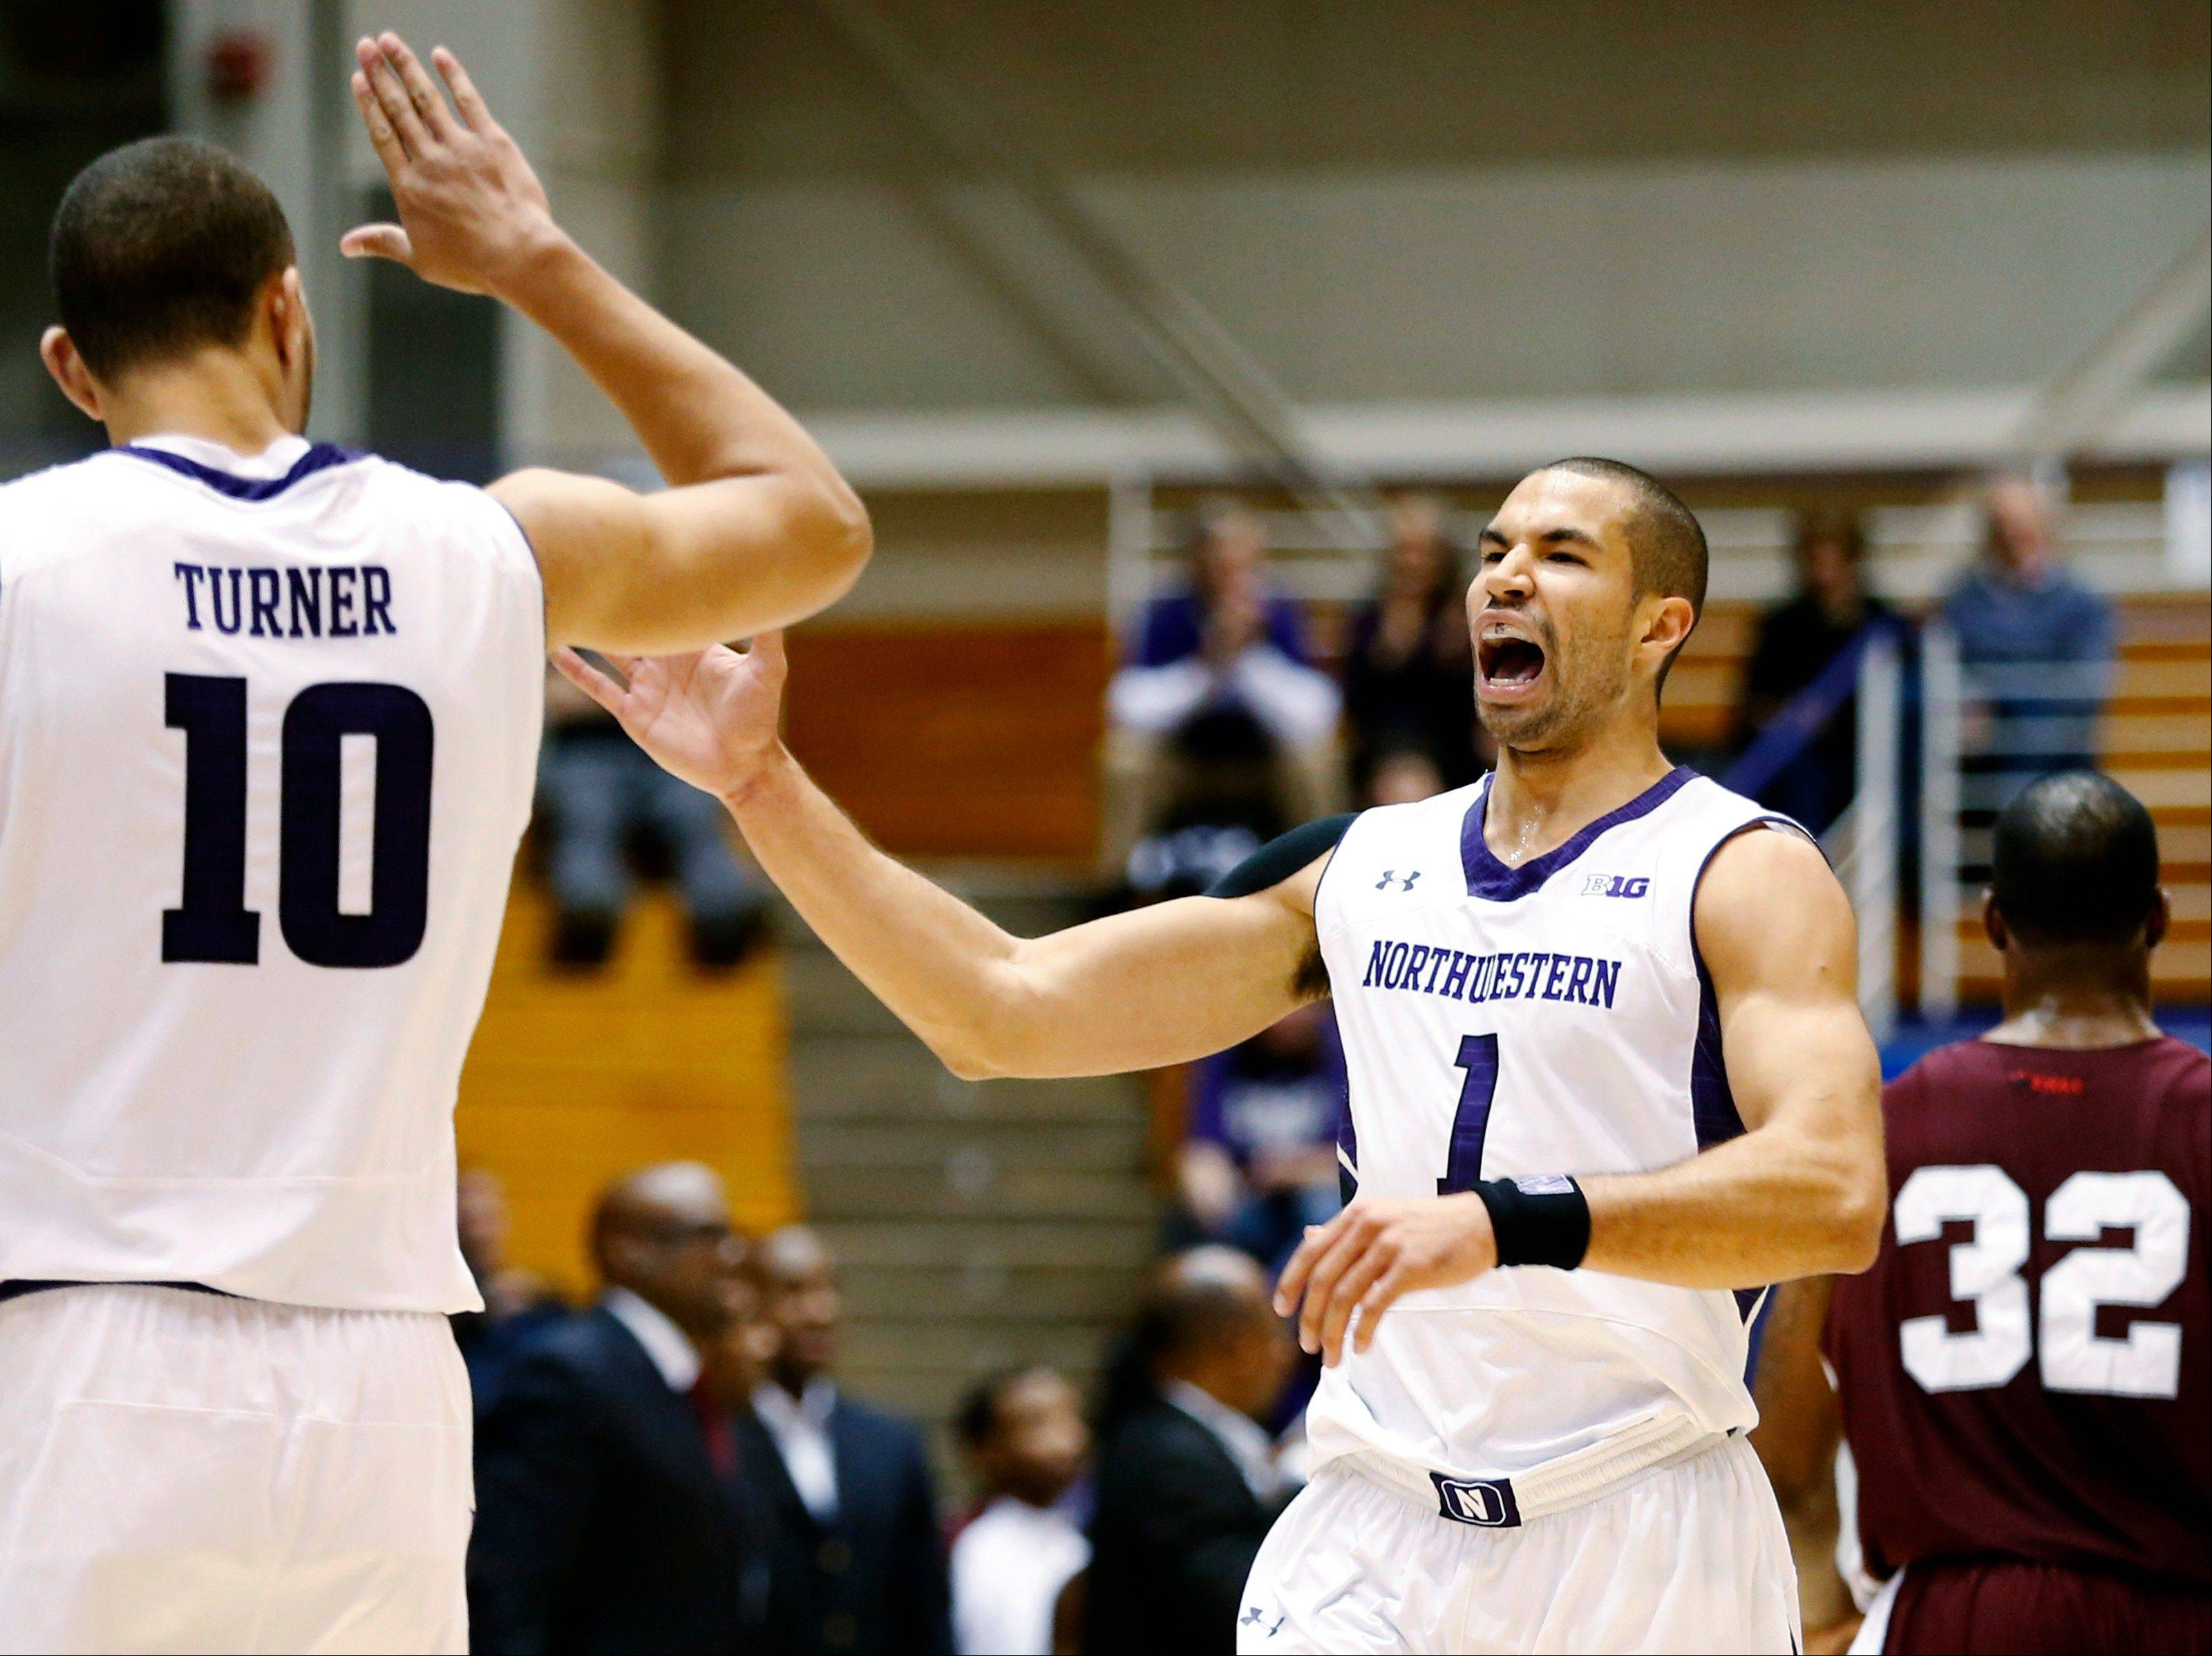 Northwestern's Drew Crawford (1) celebrates with Mike Turner (10) Tuesday after scoring against Texas Southern during the first half in Evanston.